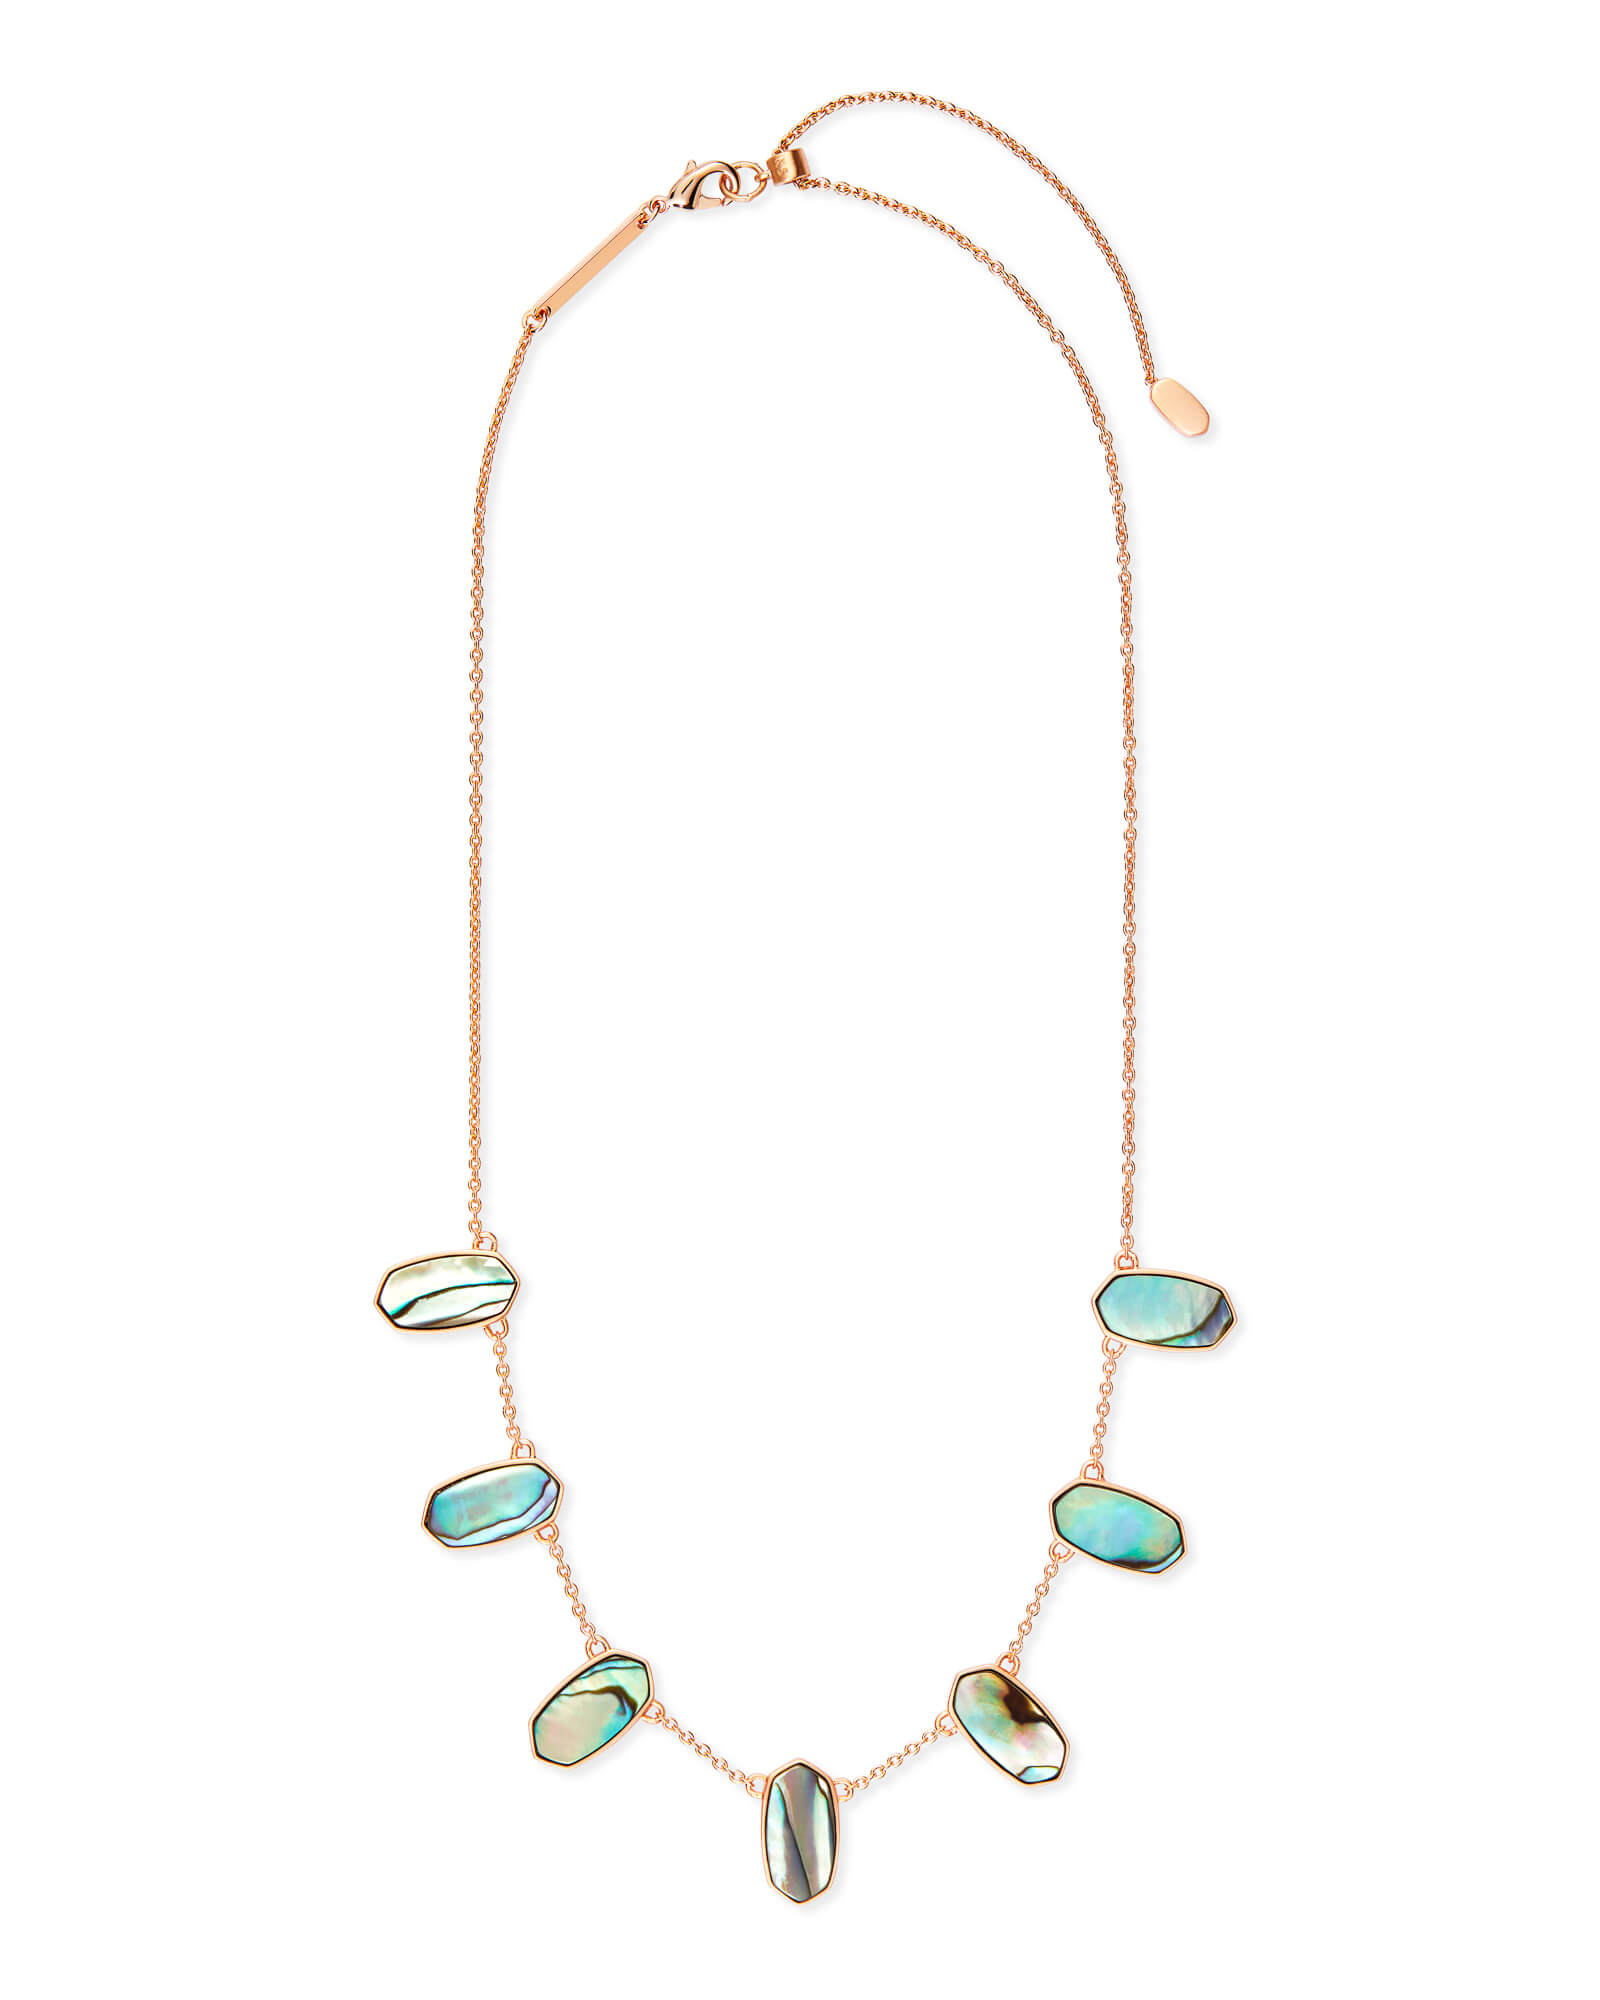 Meadow Rose Gold Collar Necklace in Abalone Shell